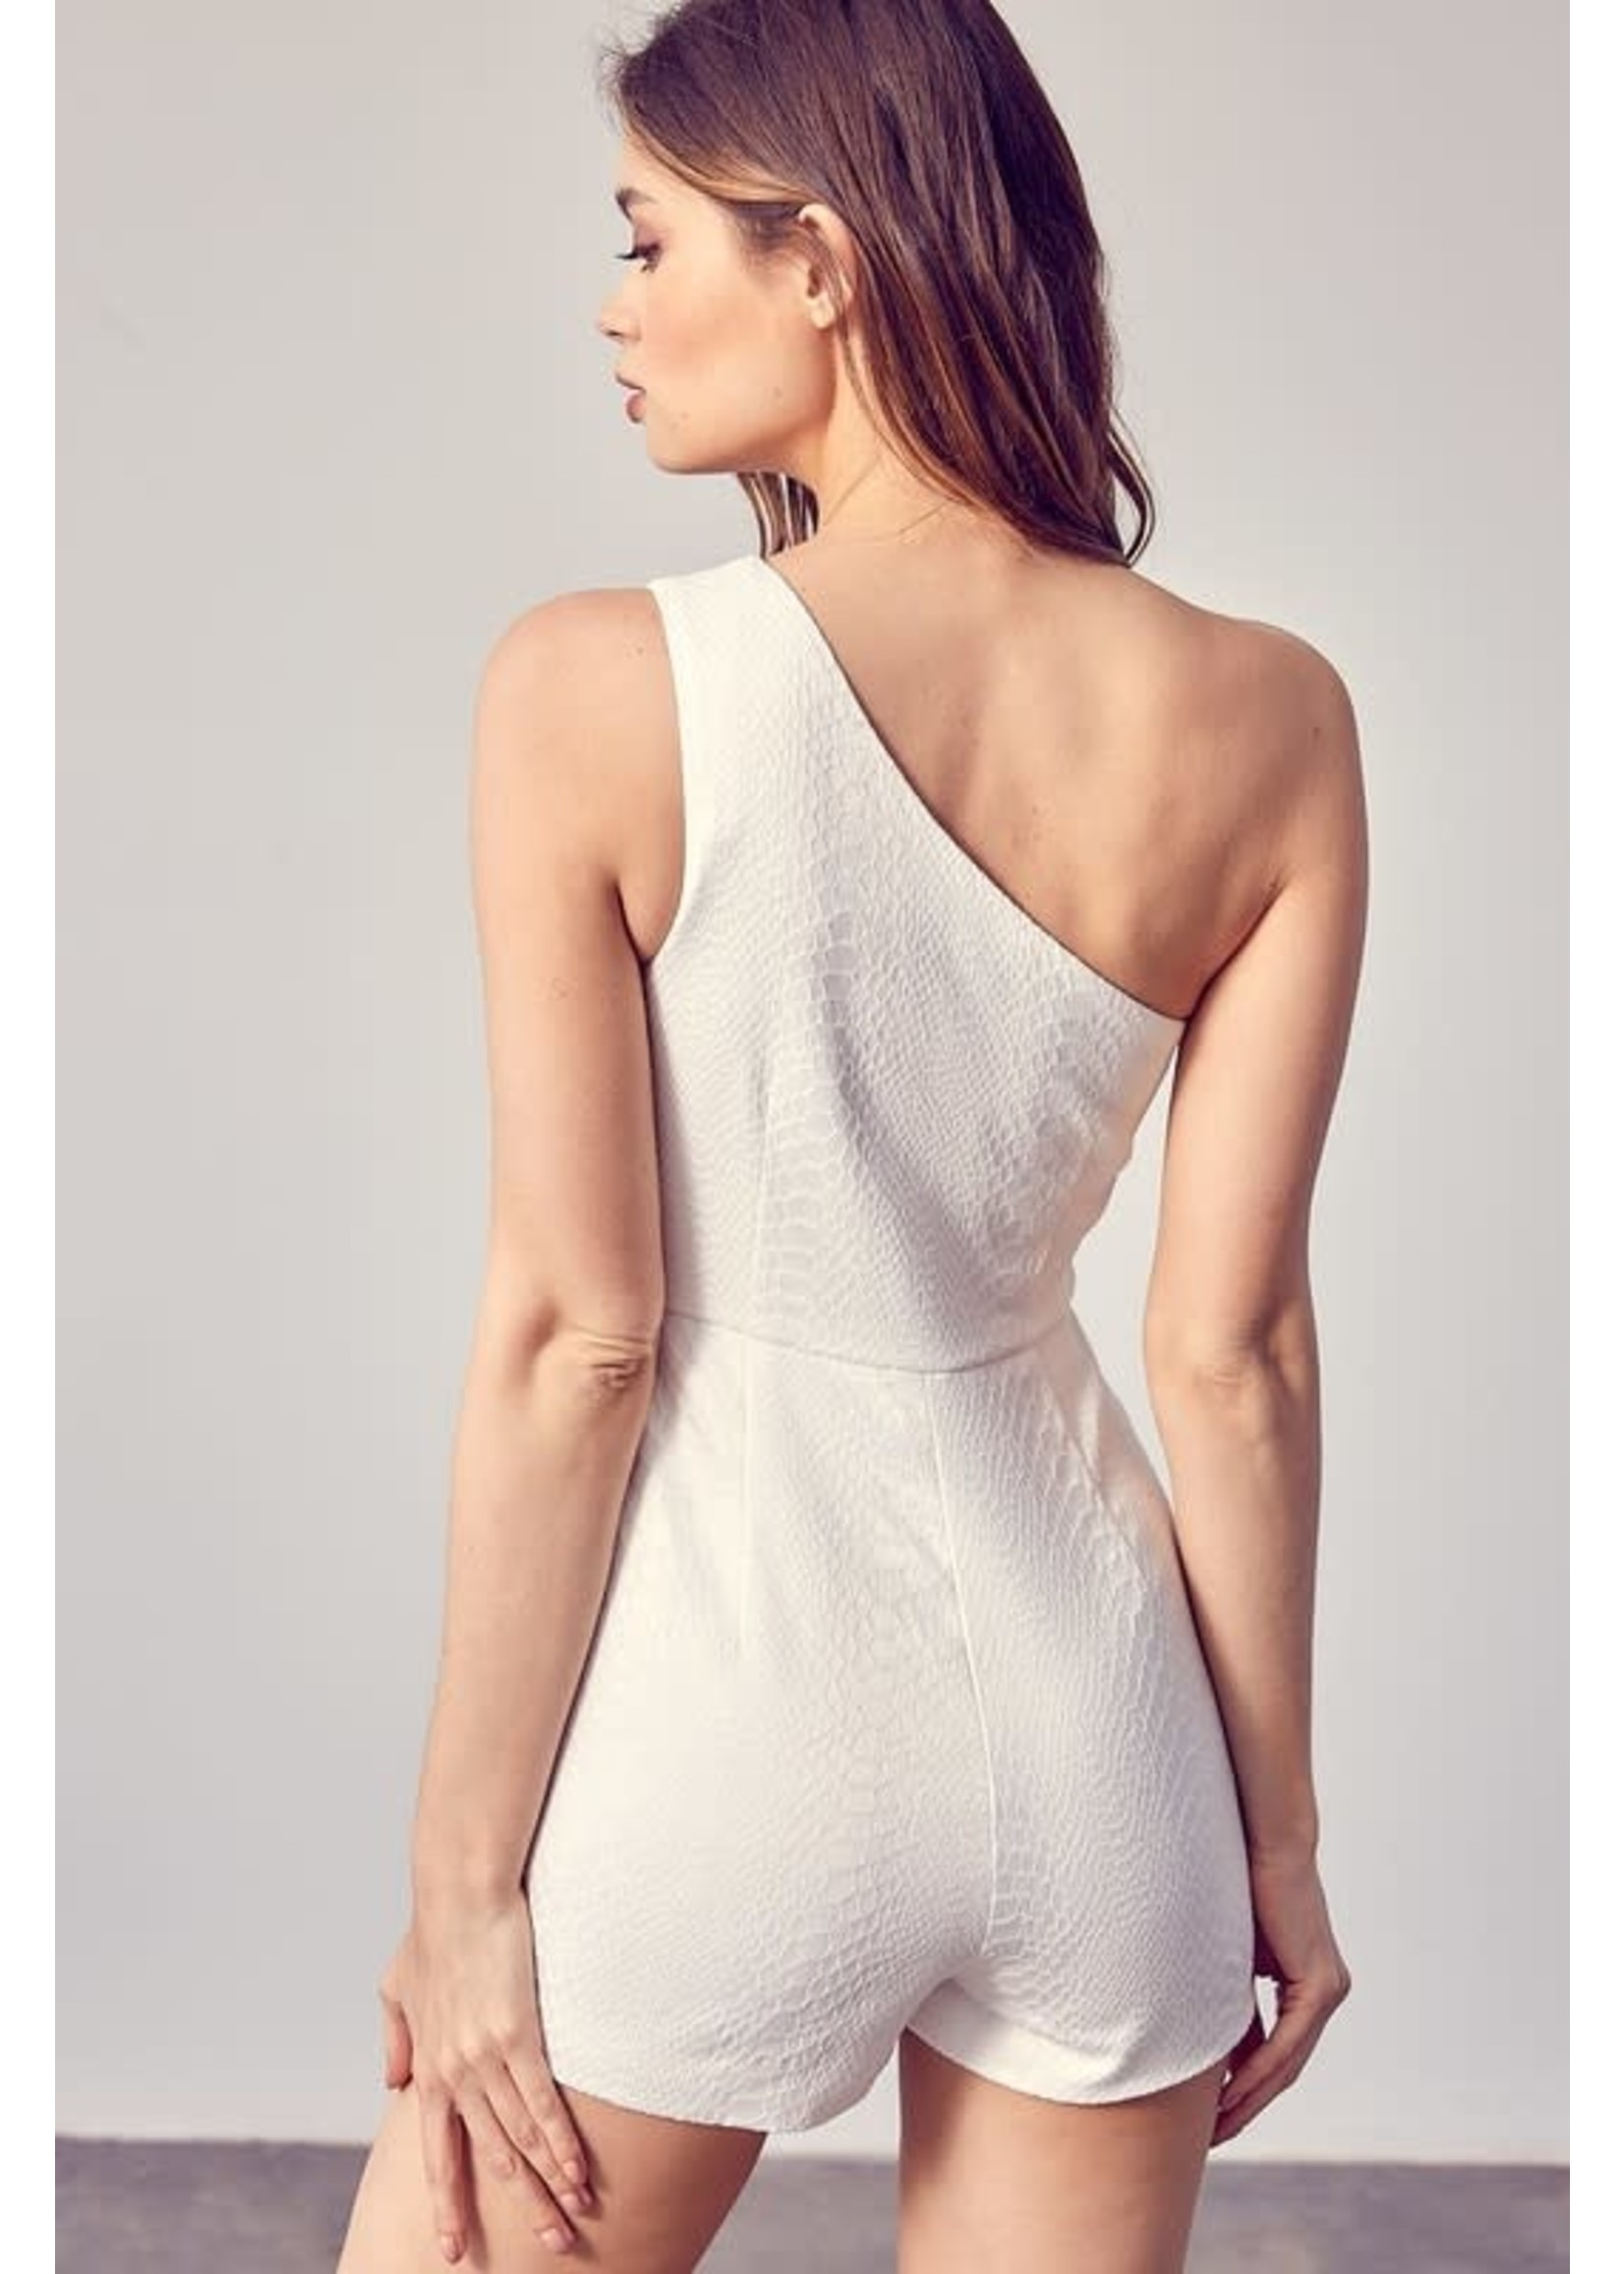 DO + BE One Shouldered Romper - GY0294